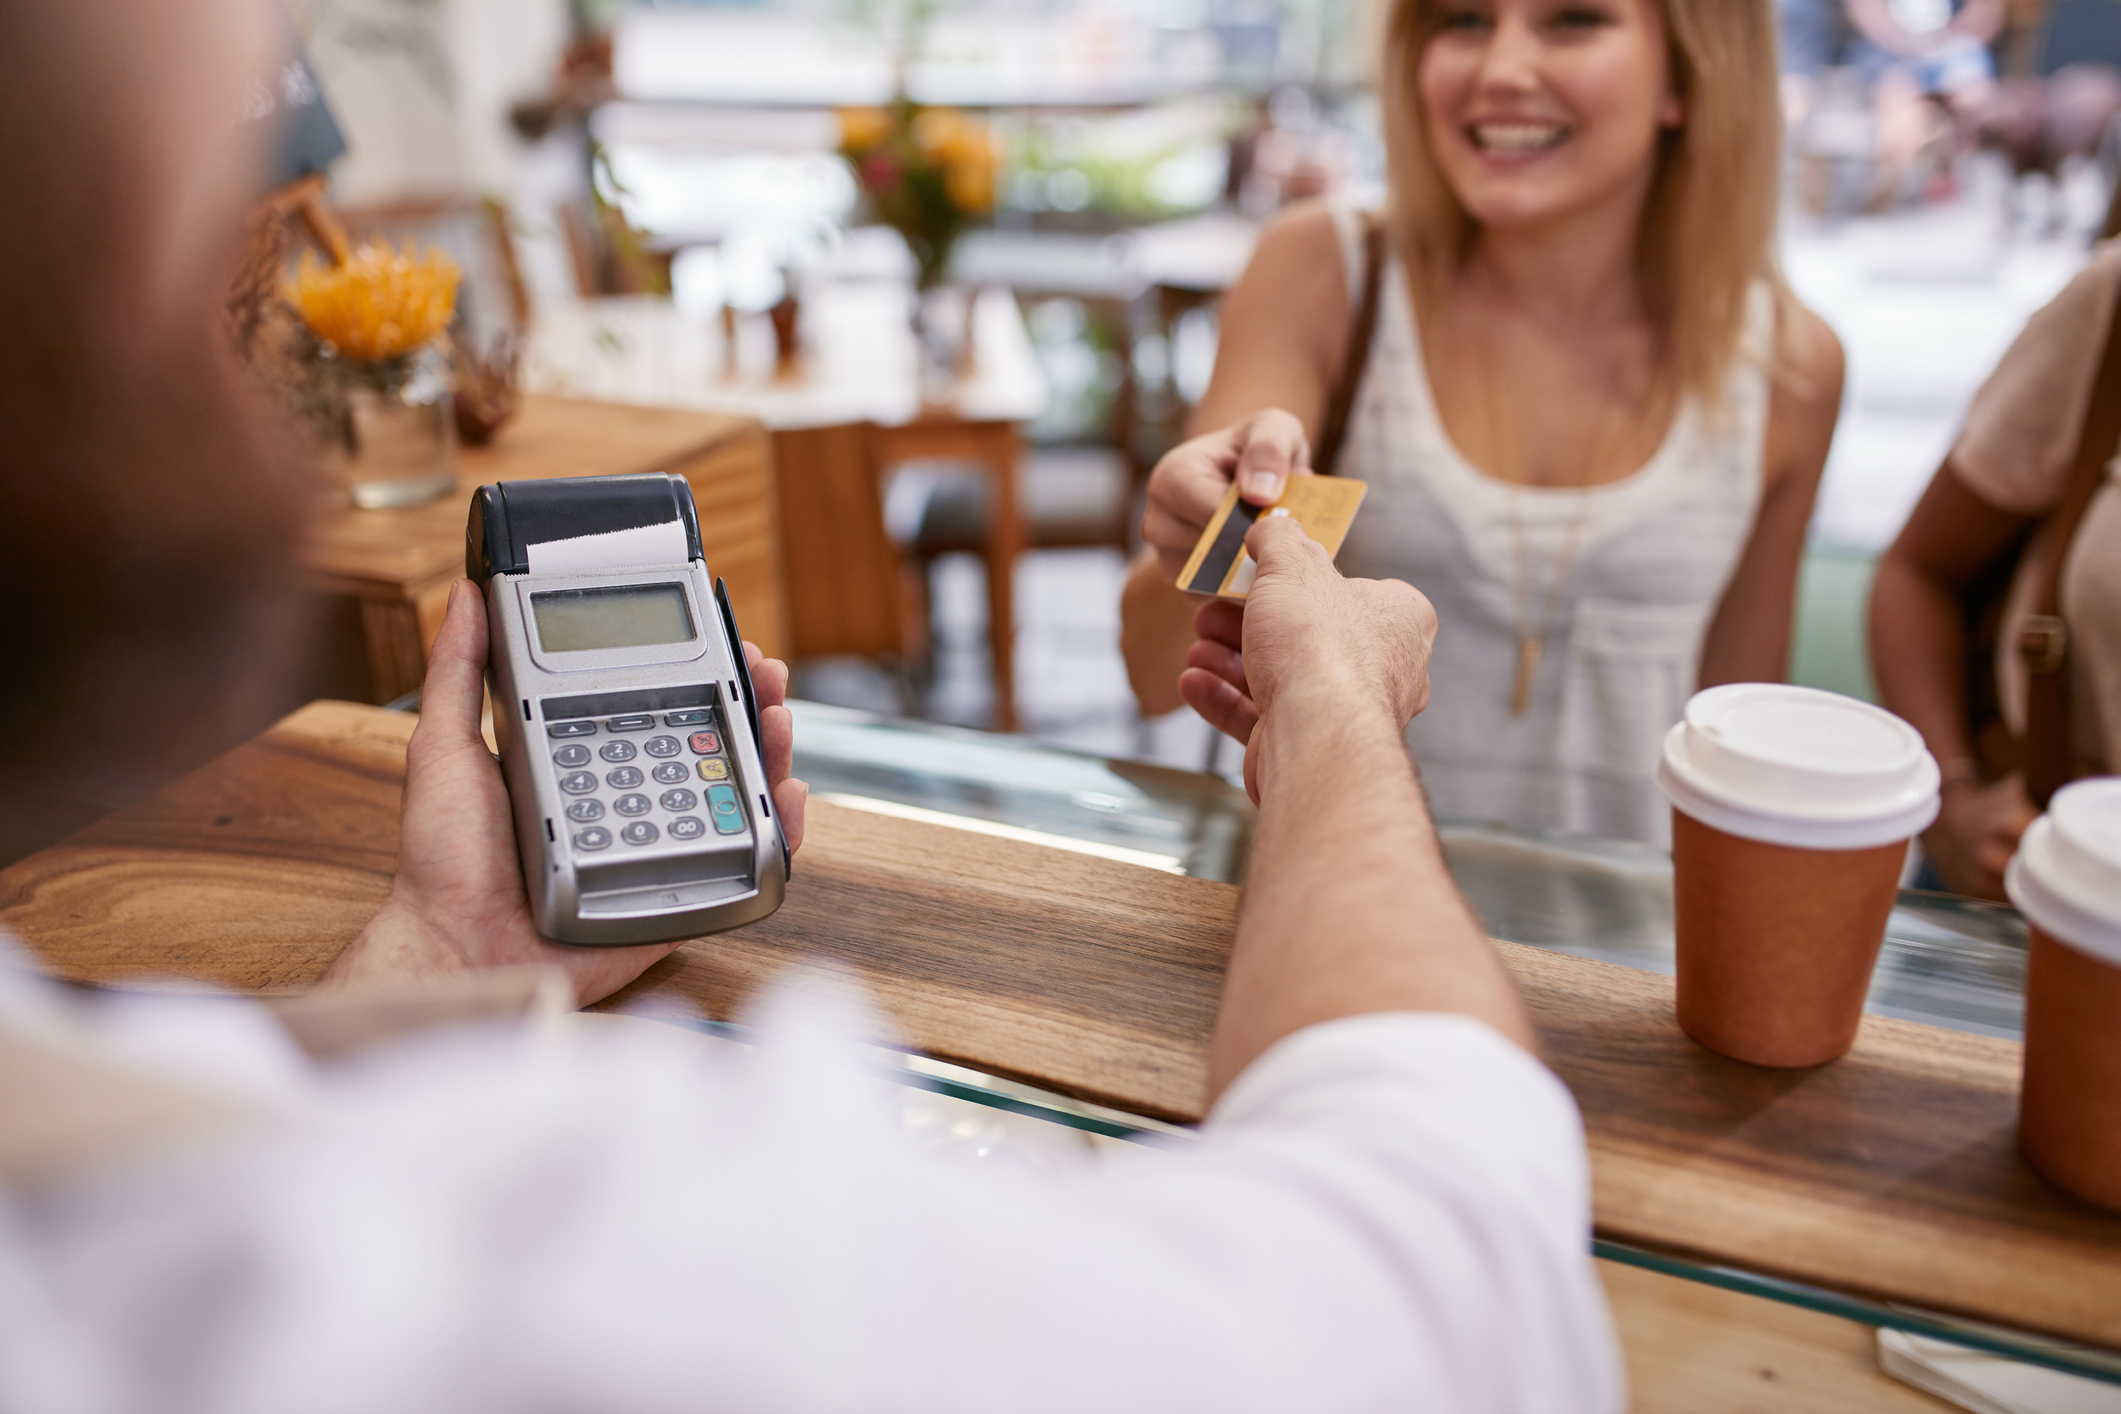 Restaurant - The needs of restaurants run the gamut from pay at the table, quick serve, food trucks and street vendors to fine dining establishments. The Authority has your processing needs covered with solutions tailored to suit those needs.